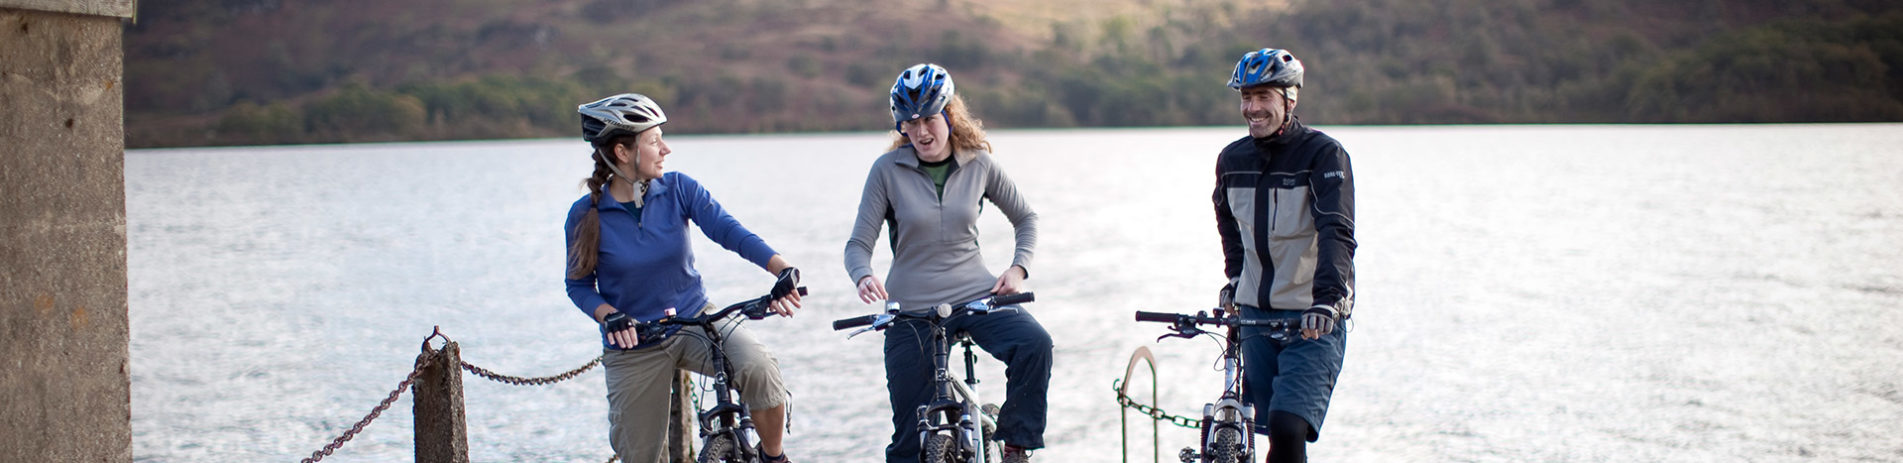 two-women-and-man-on-bikes-with-helmets-on-at-the-edge-of-pier-with-loch-behind-them